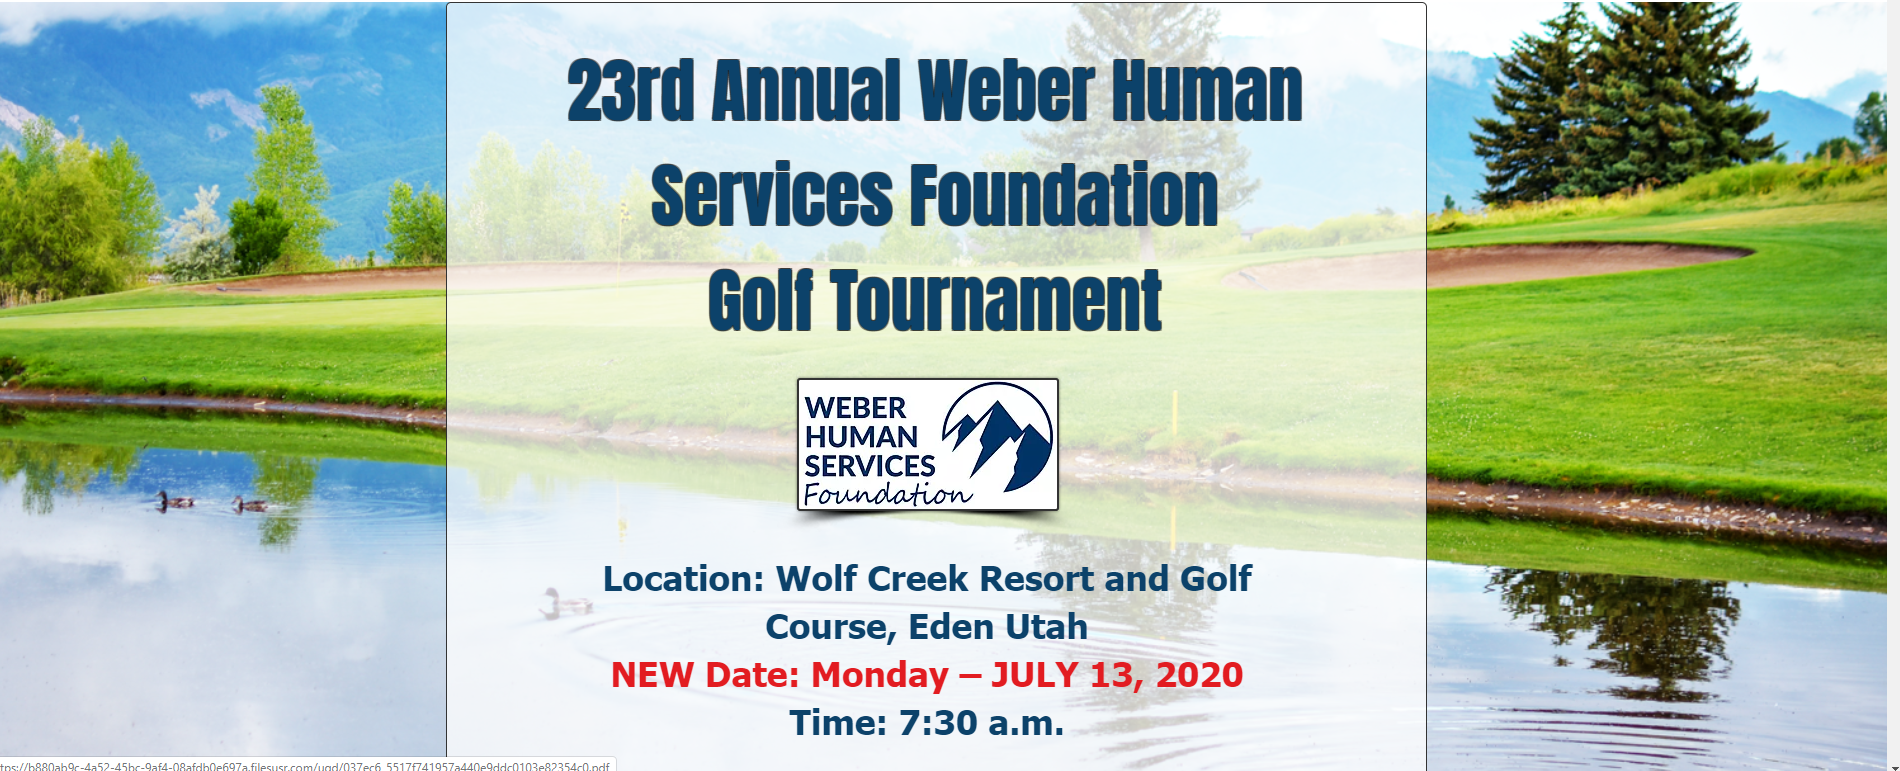 Weber Human Services Foundation 23rd Annual Golf Tournament